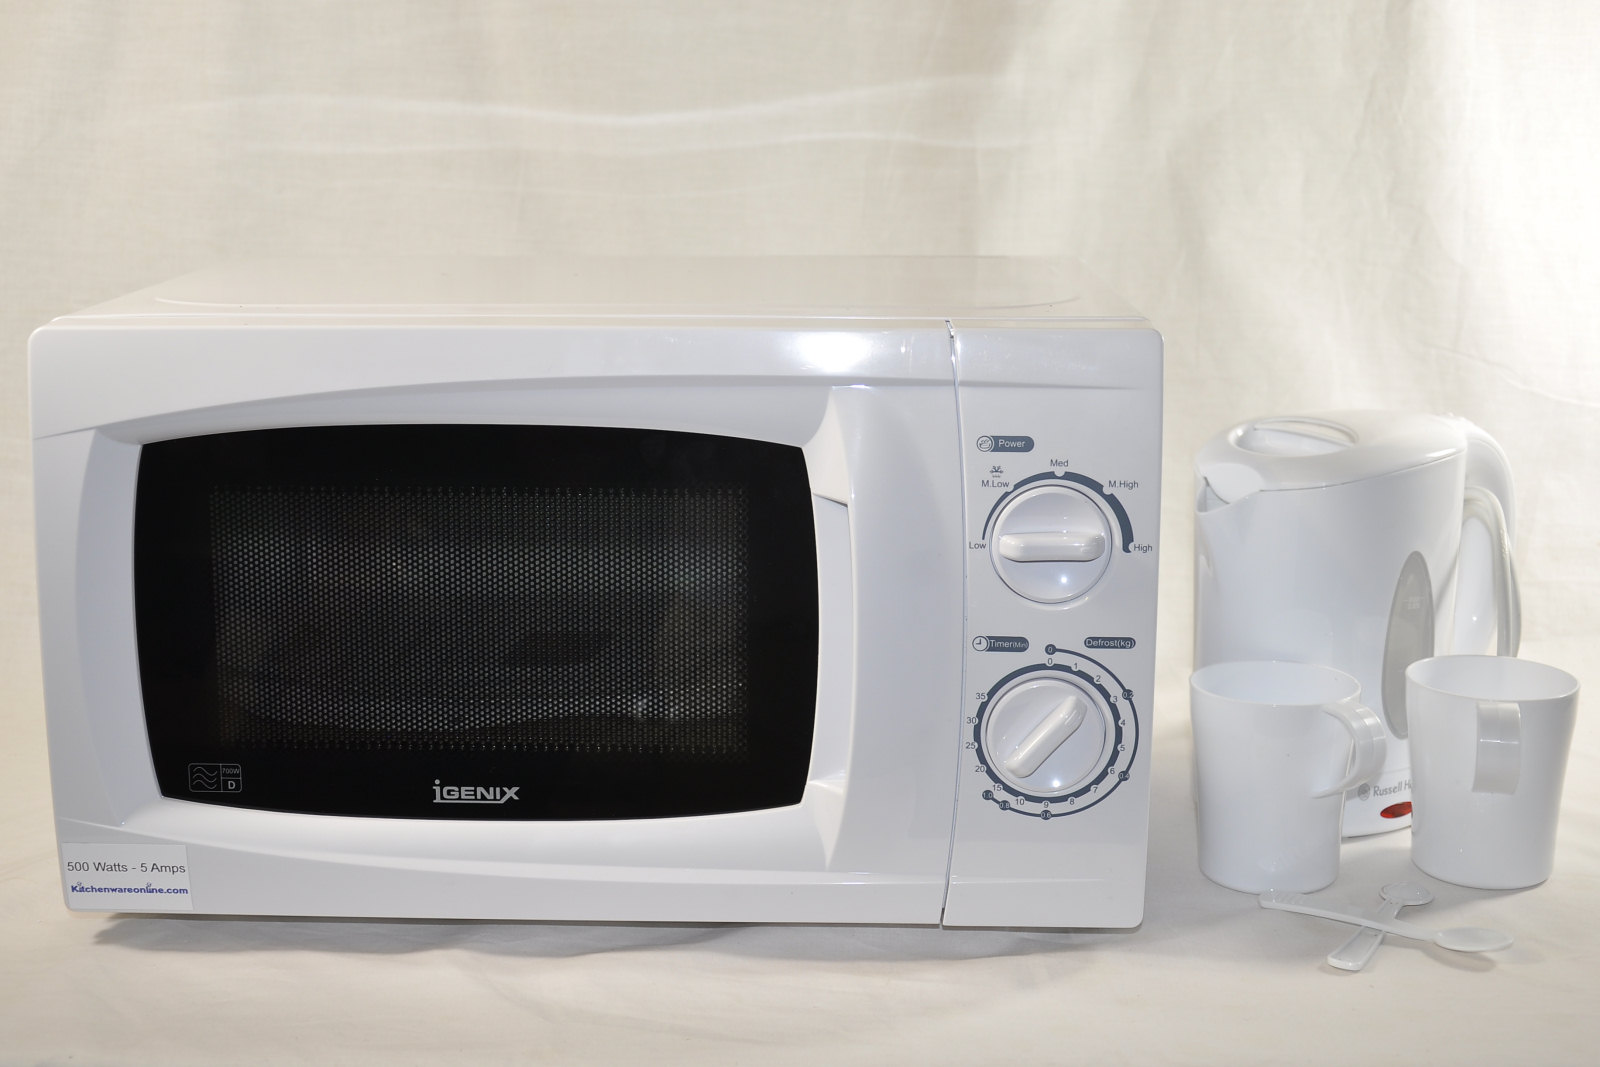 Low Power Microwave and Kettle set [LOWPOWER.KIT002]